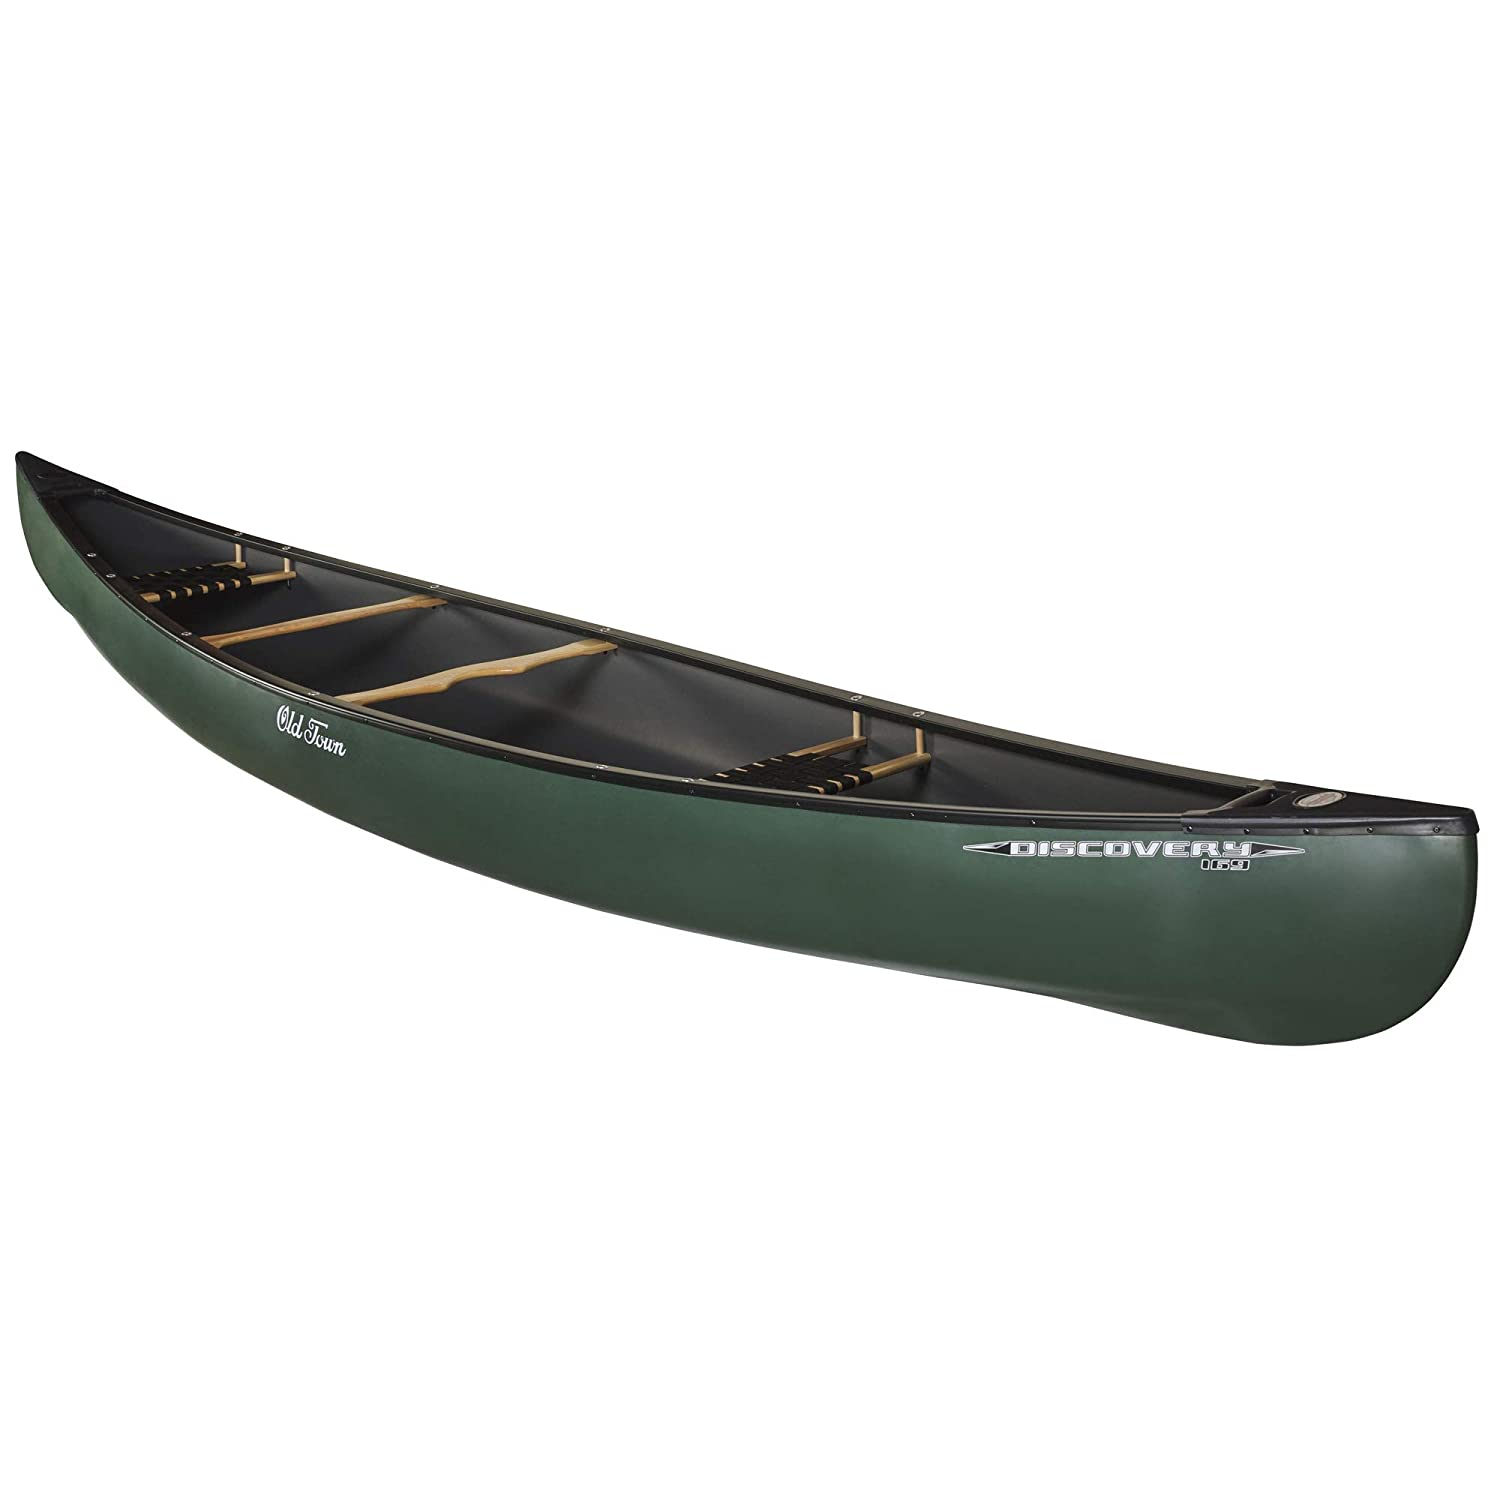 Old Town Canoes & Kayaks Discovery 169 Recreational Canoe